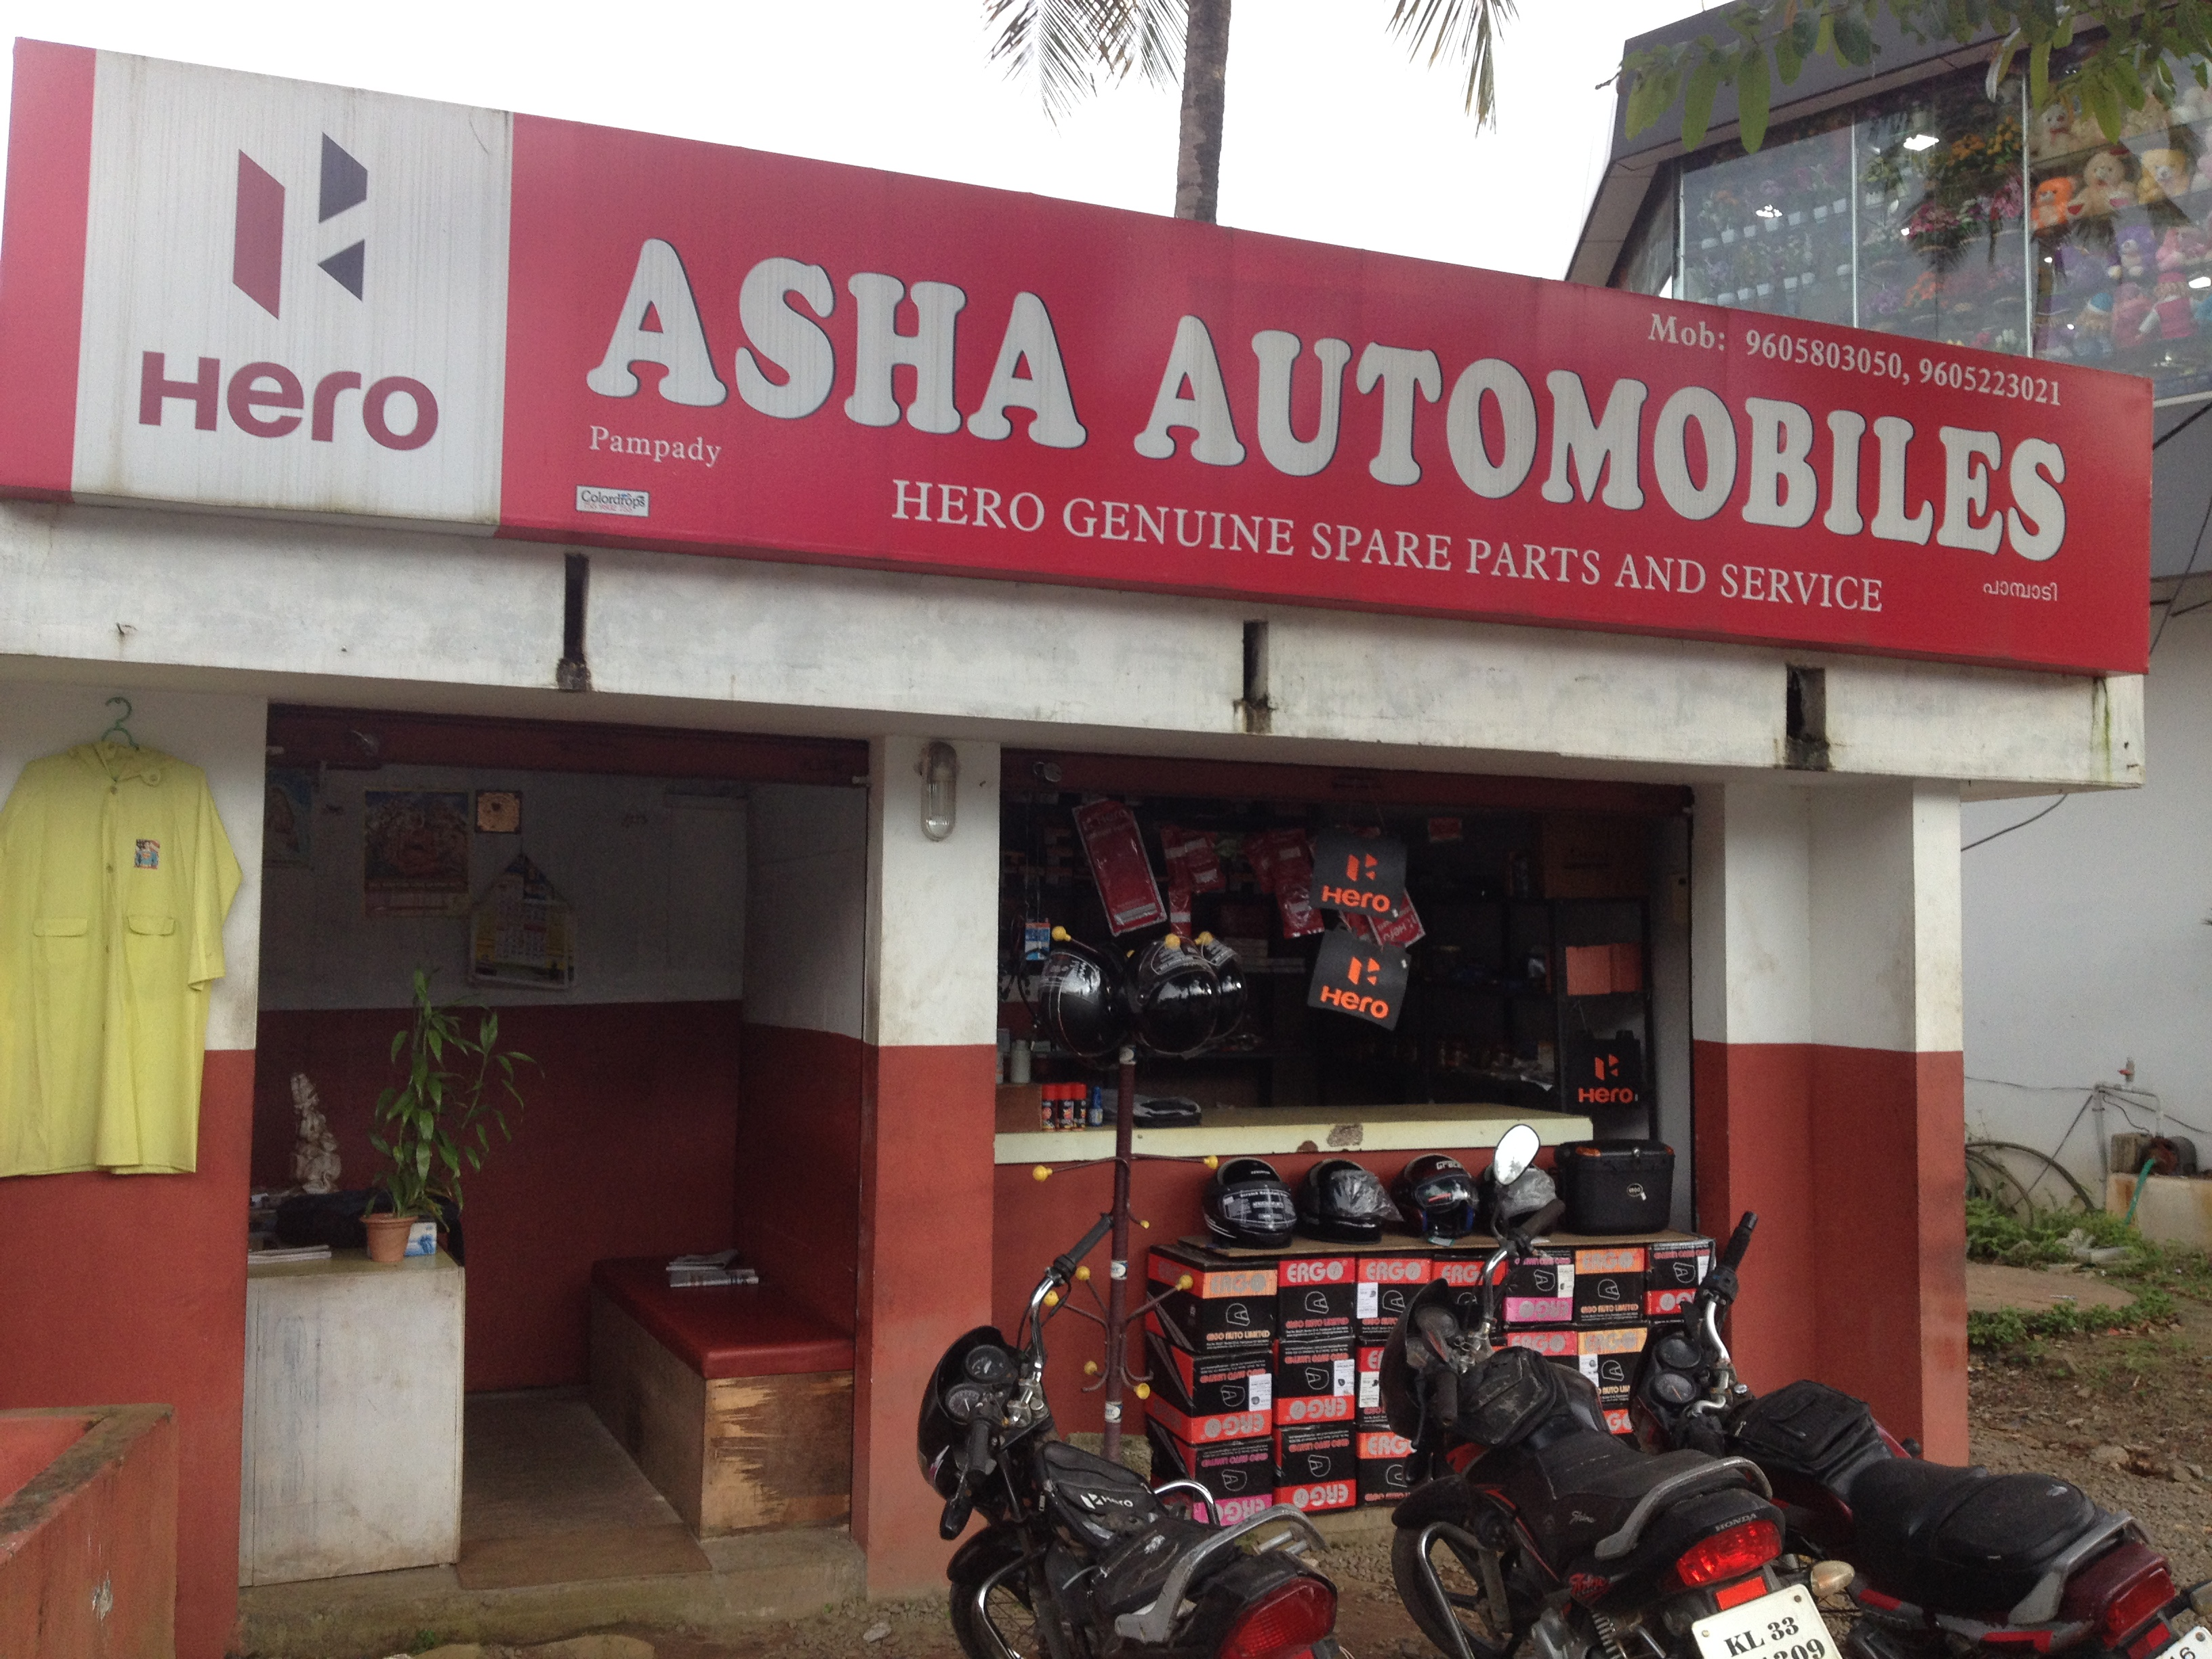 ASHA AUTOMOBILE PAMPADY, LUBES AND SPARE PARTS,  service in Pampady, Kottayam